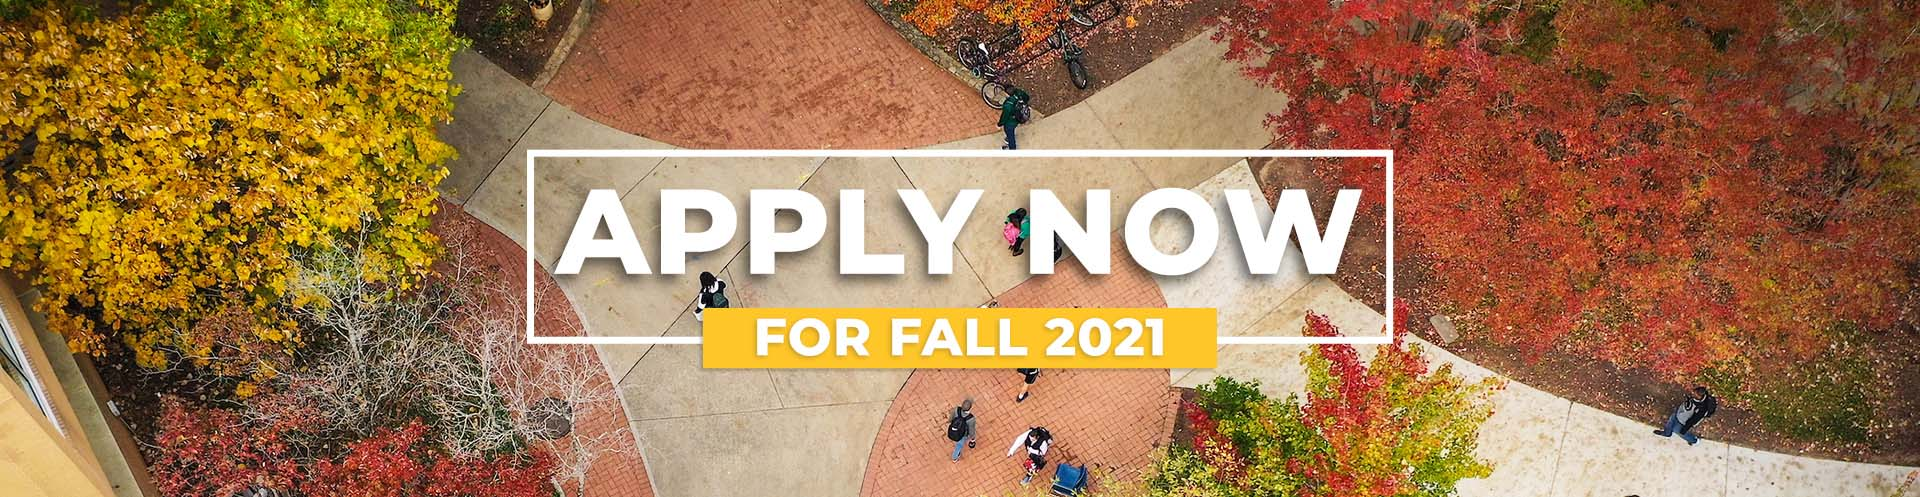 Apply Now for Fall 2021